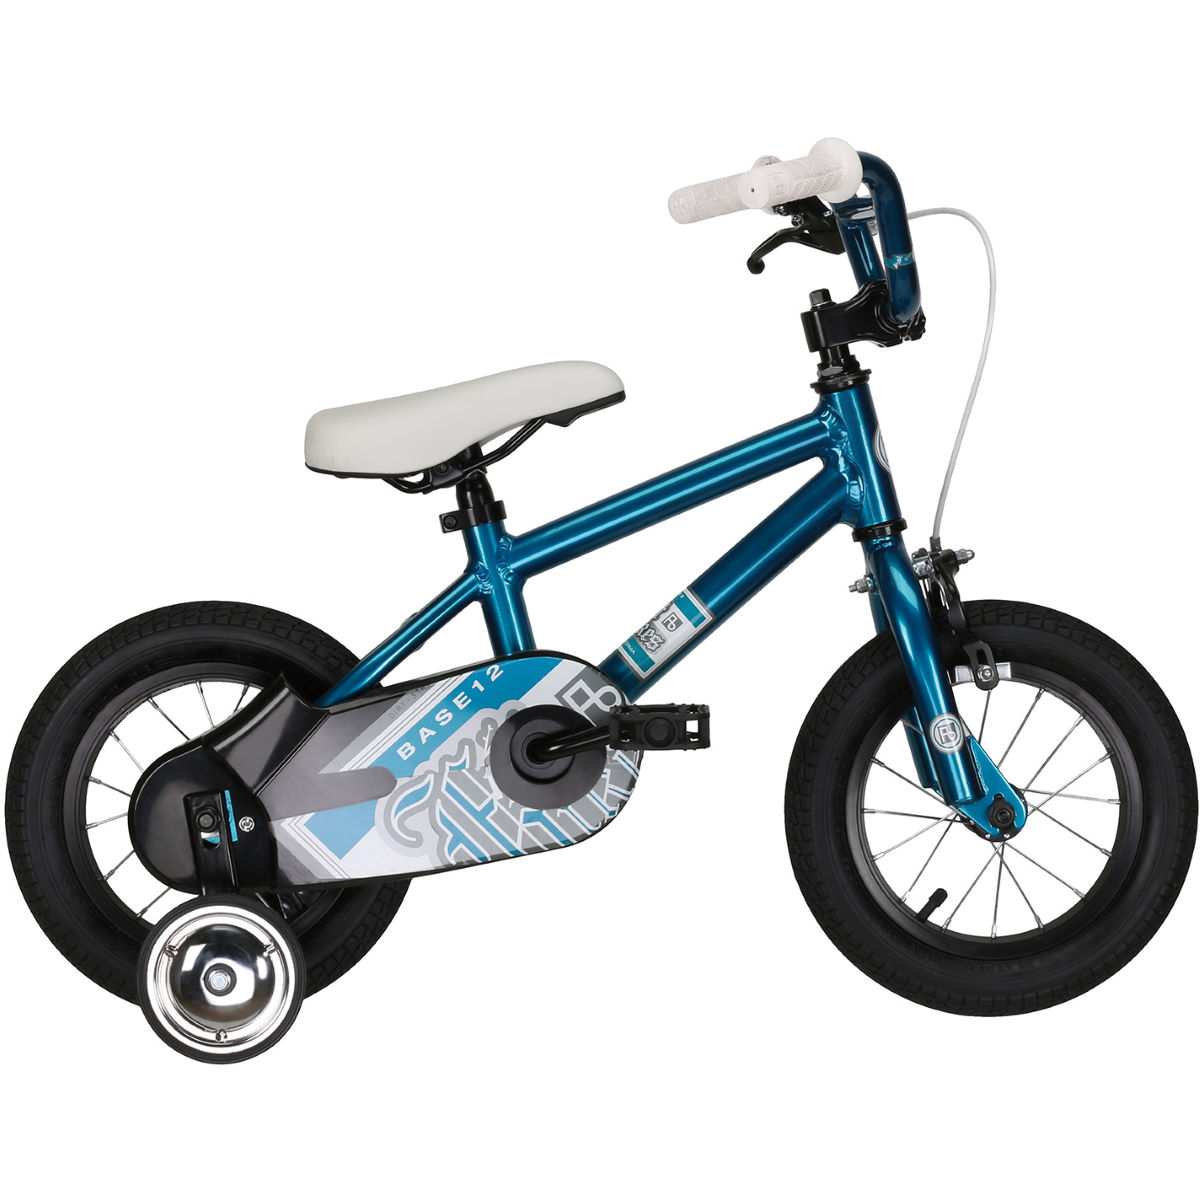 Vélo Enfant Felt Base 12 - 12'' Stock Bike Nickel Cyan